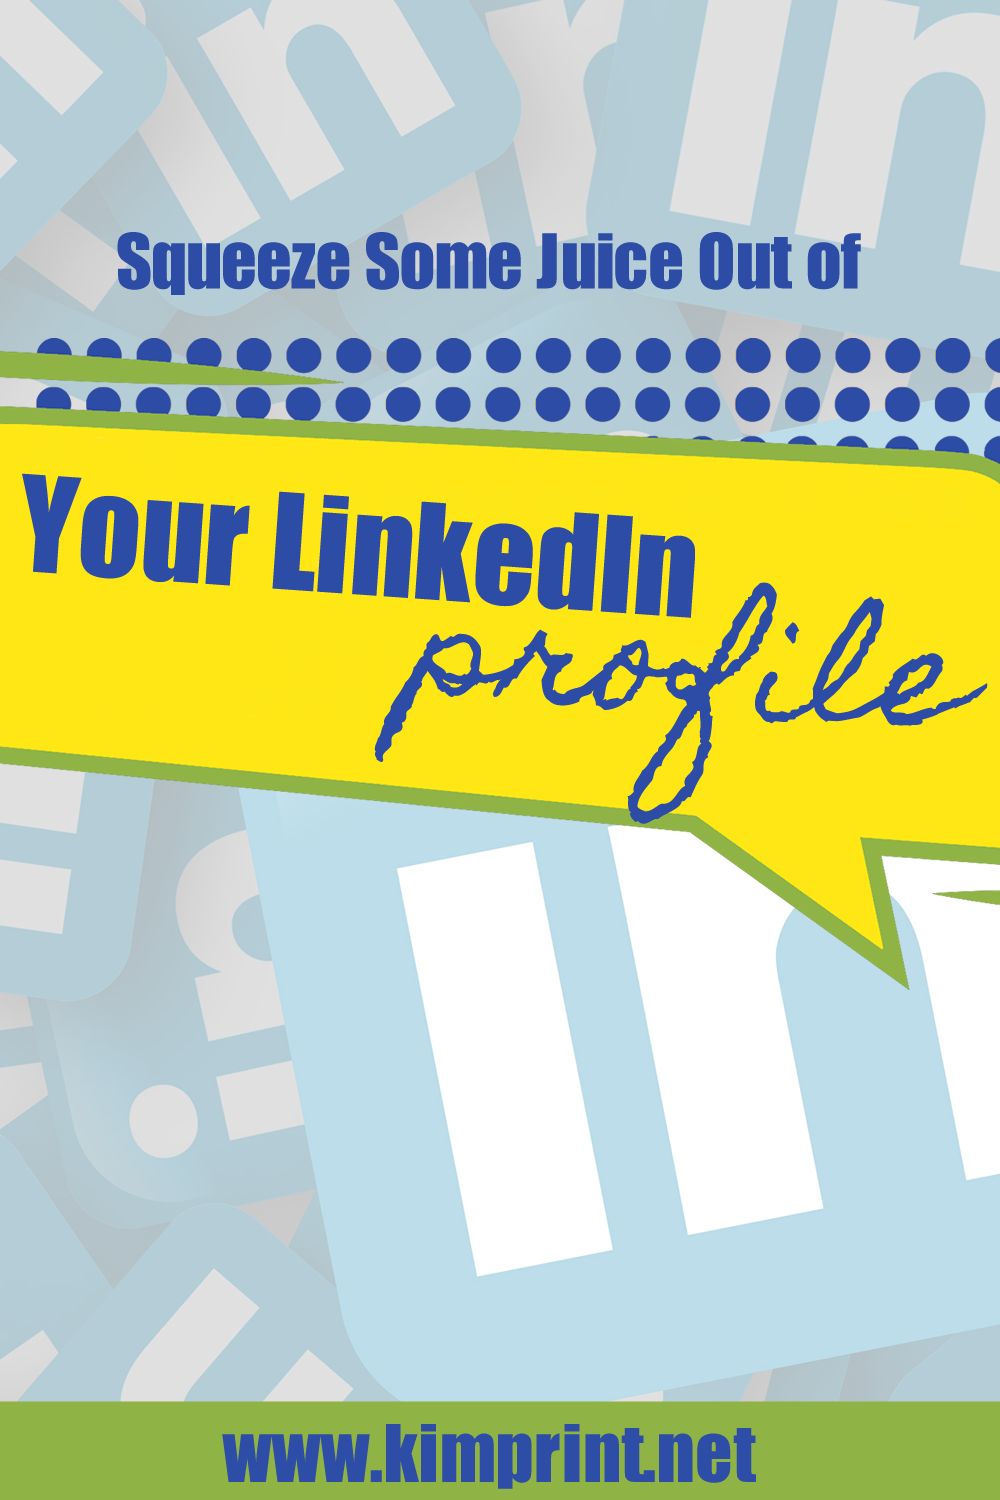 Squeeze Some Juice Out of Your LinkedIn Profile